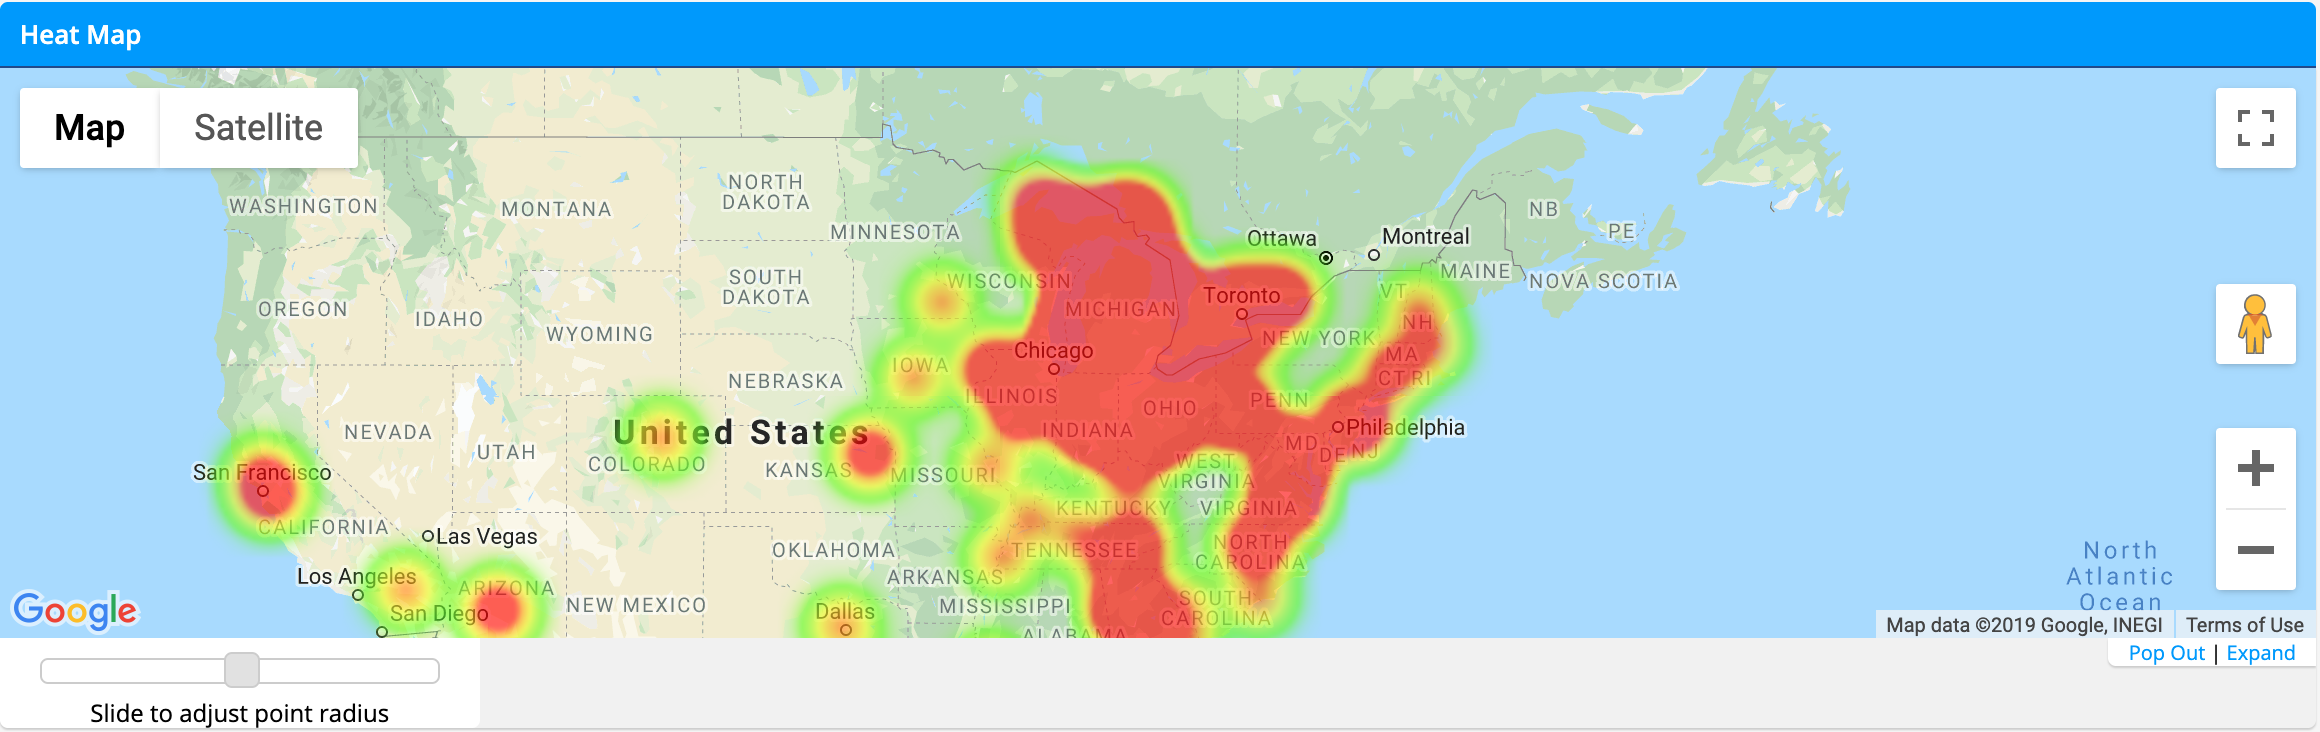 How can I make use of the heat map? – How can we help you? Chicago Heat Map on